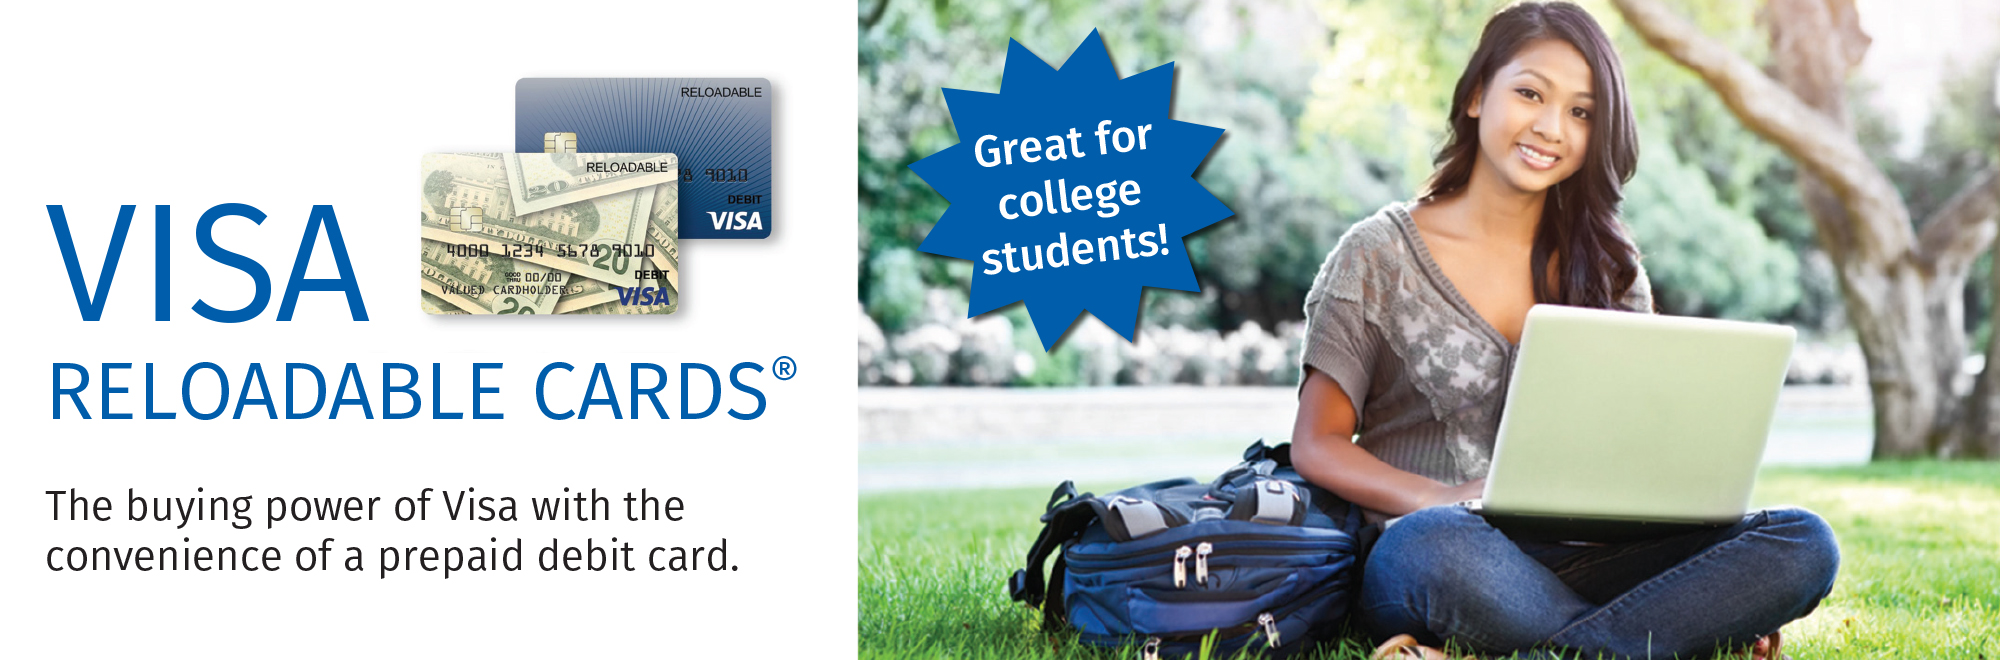 VISA RELOADABLE CARDS® The buying power of Visa with the convenience of a prepaid debit card. Great for college students!